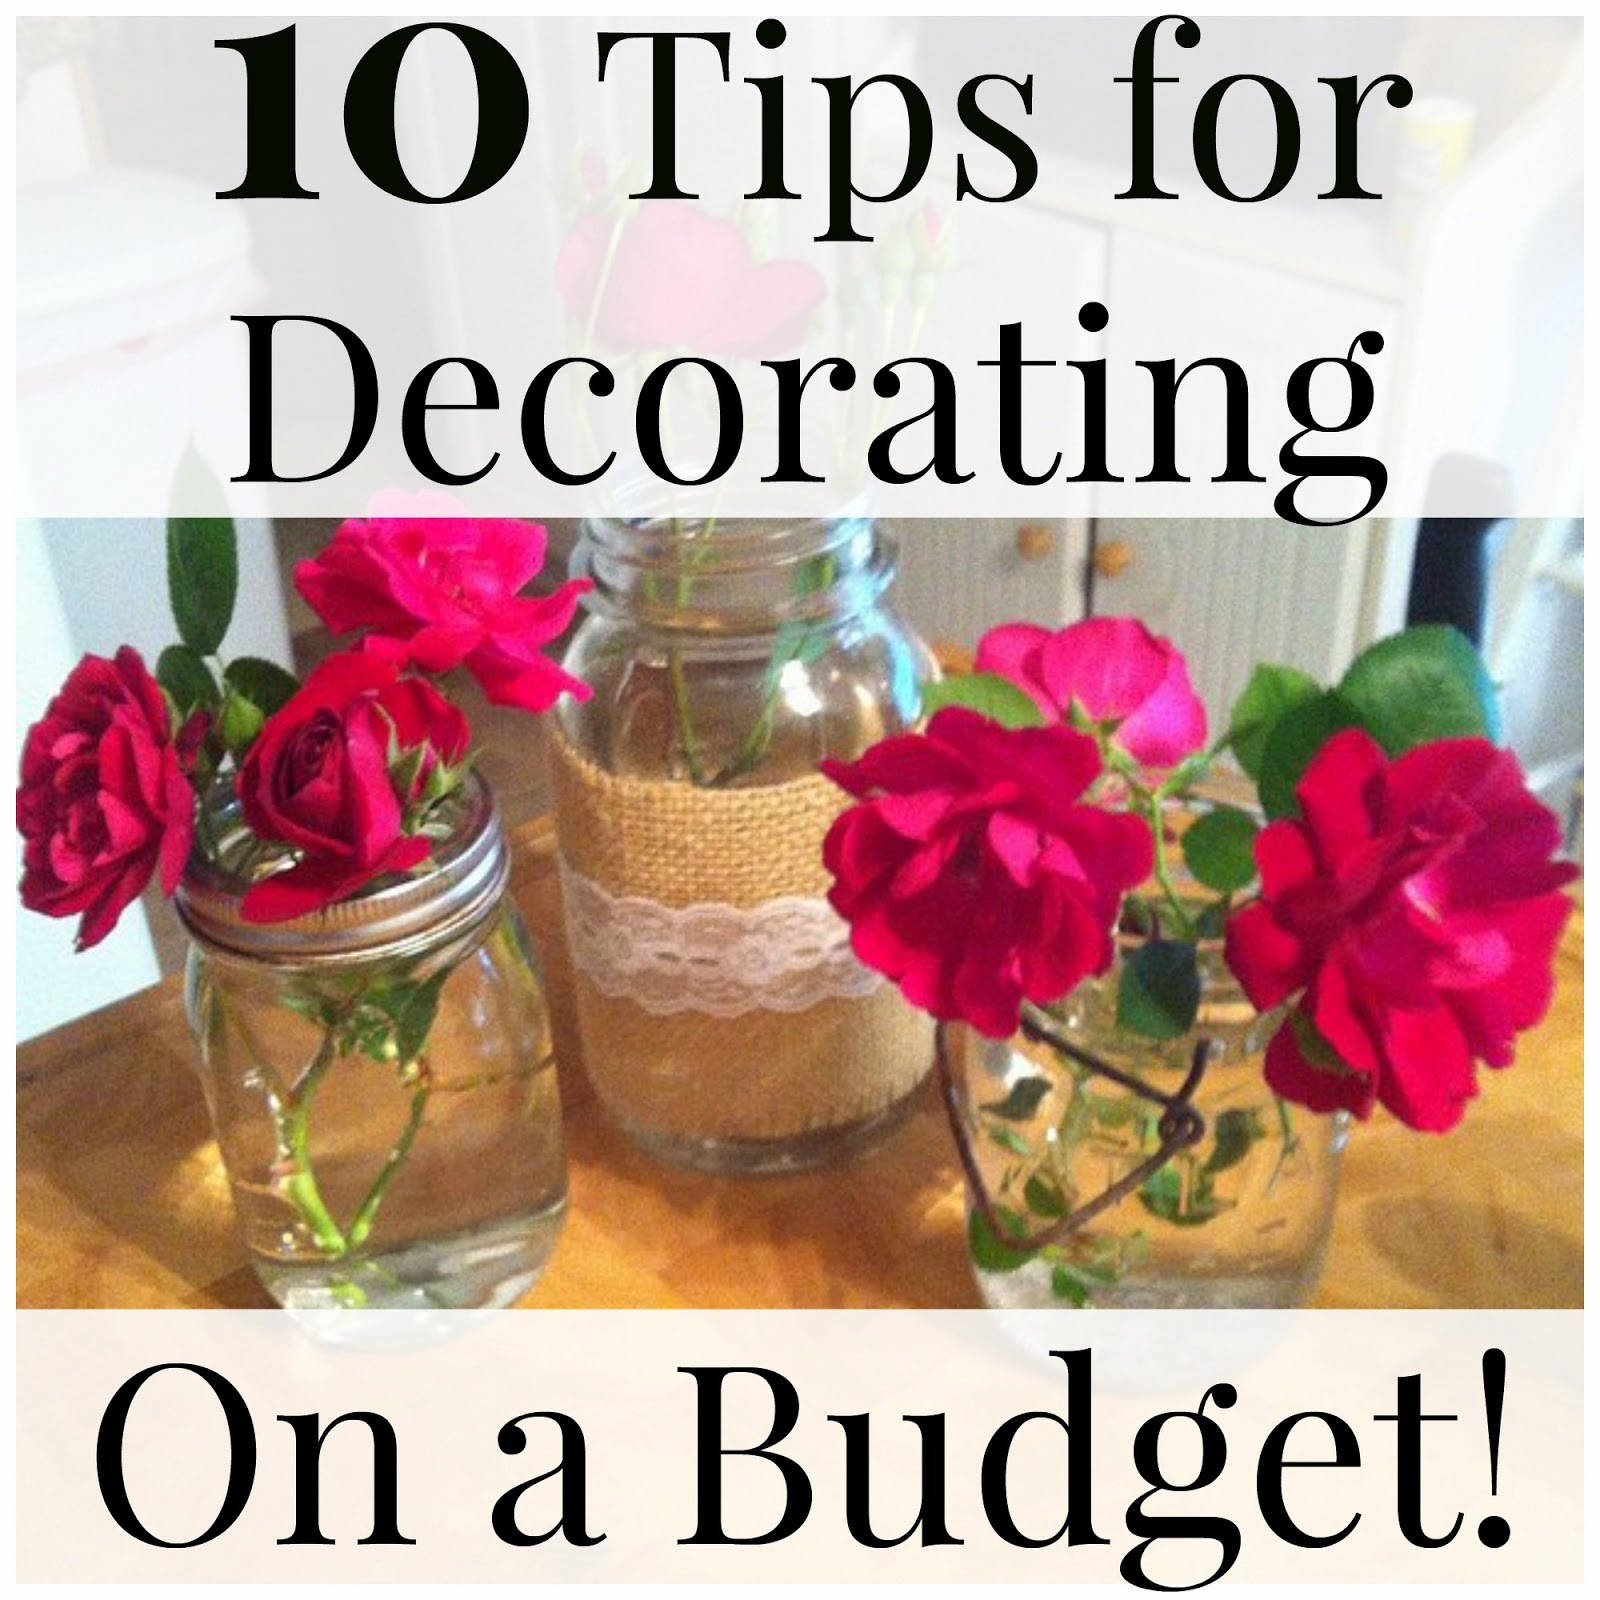 decorating blogs on a budget thrifty 31 10 tips for decorating on a budget 12057